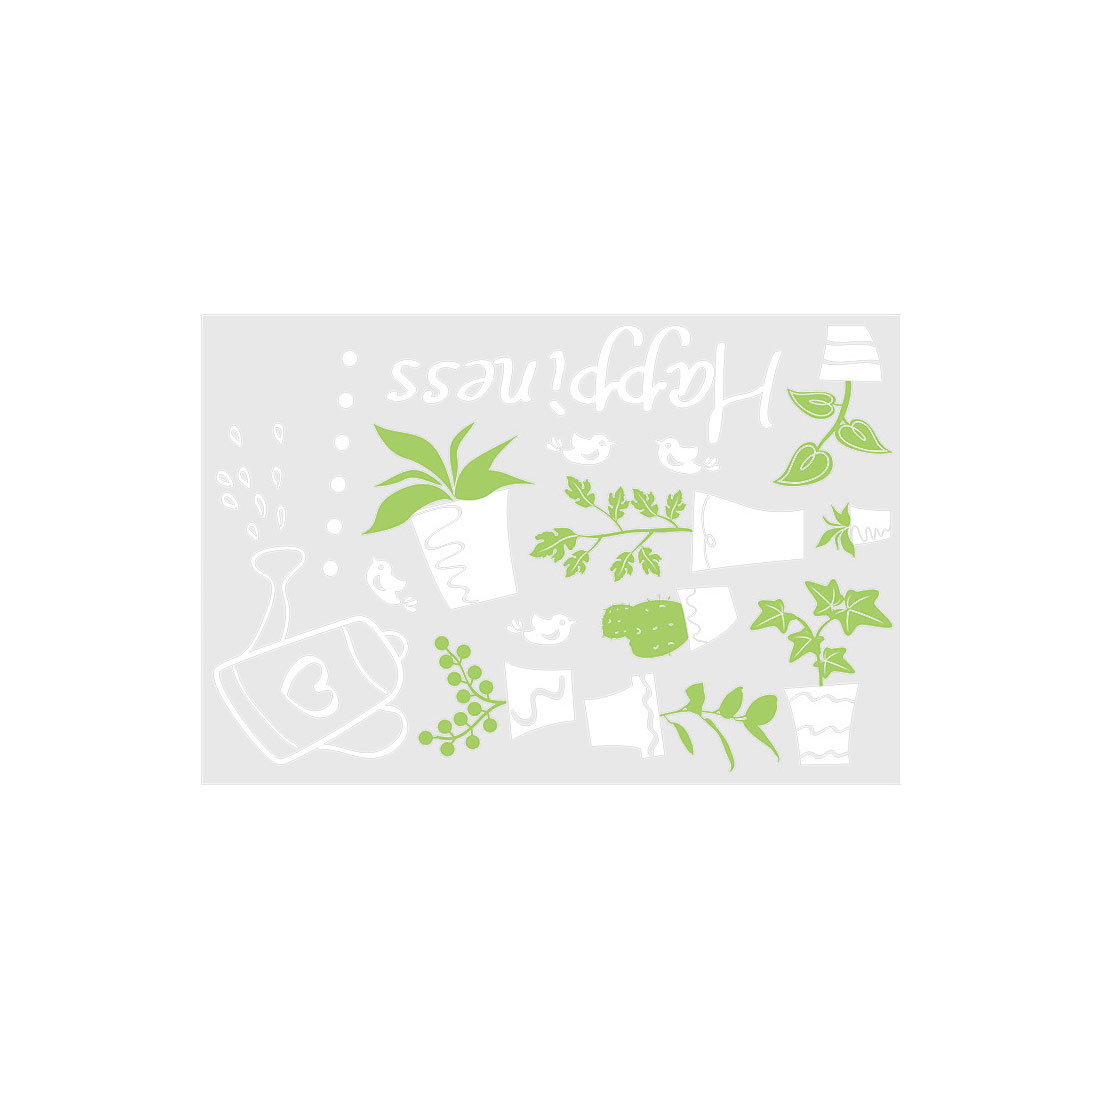 Potted Plant Pattern Wall Sticker Self-stick Removable Decal for Living Room